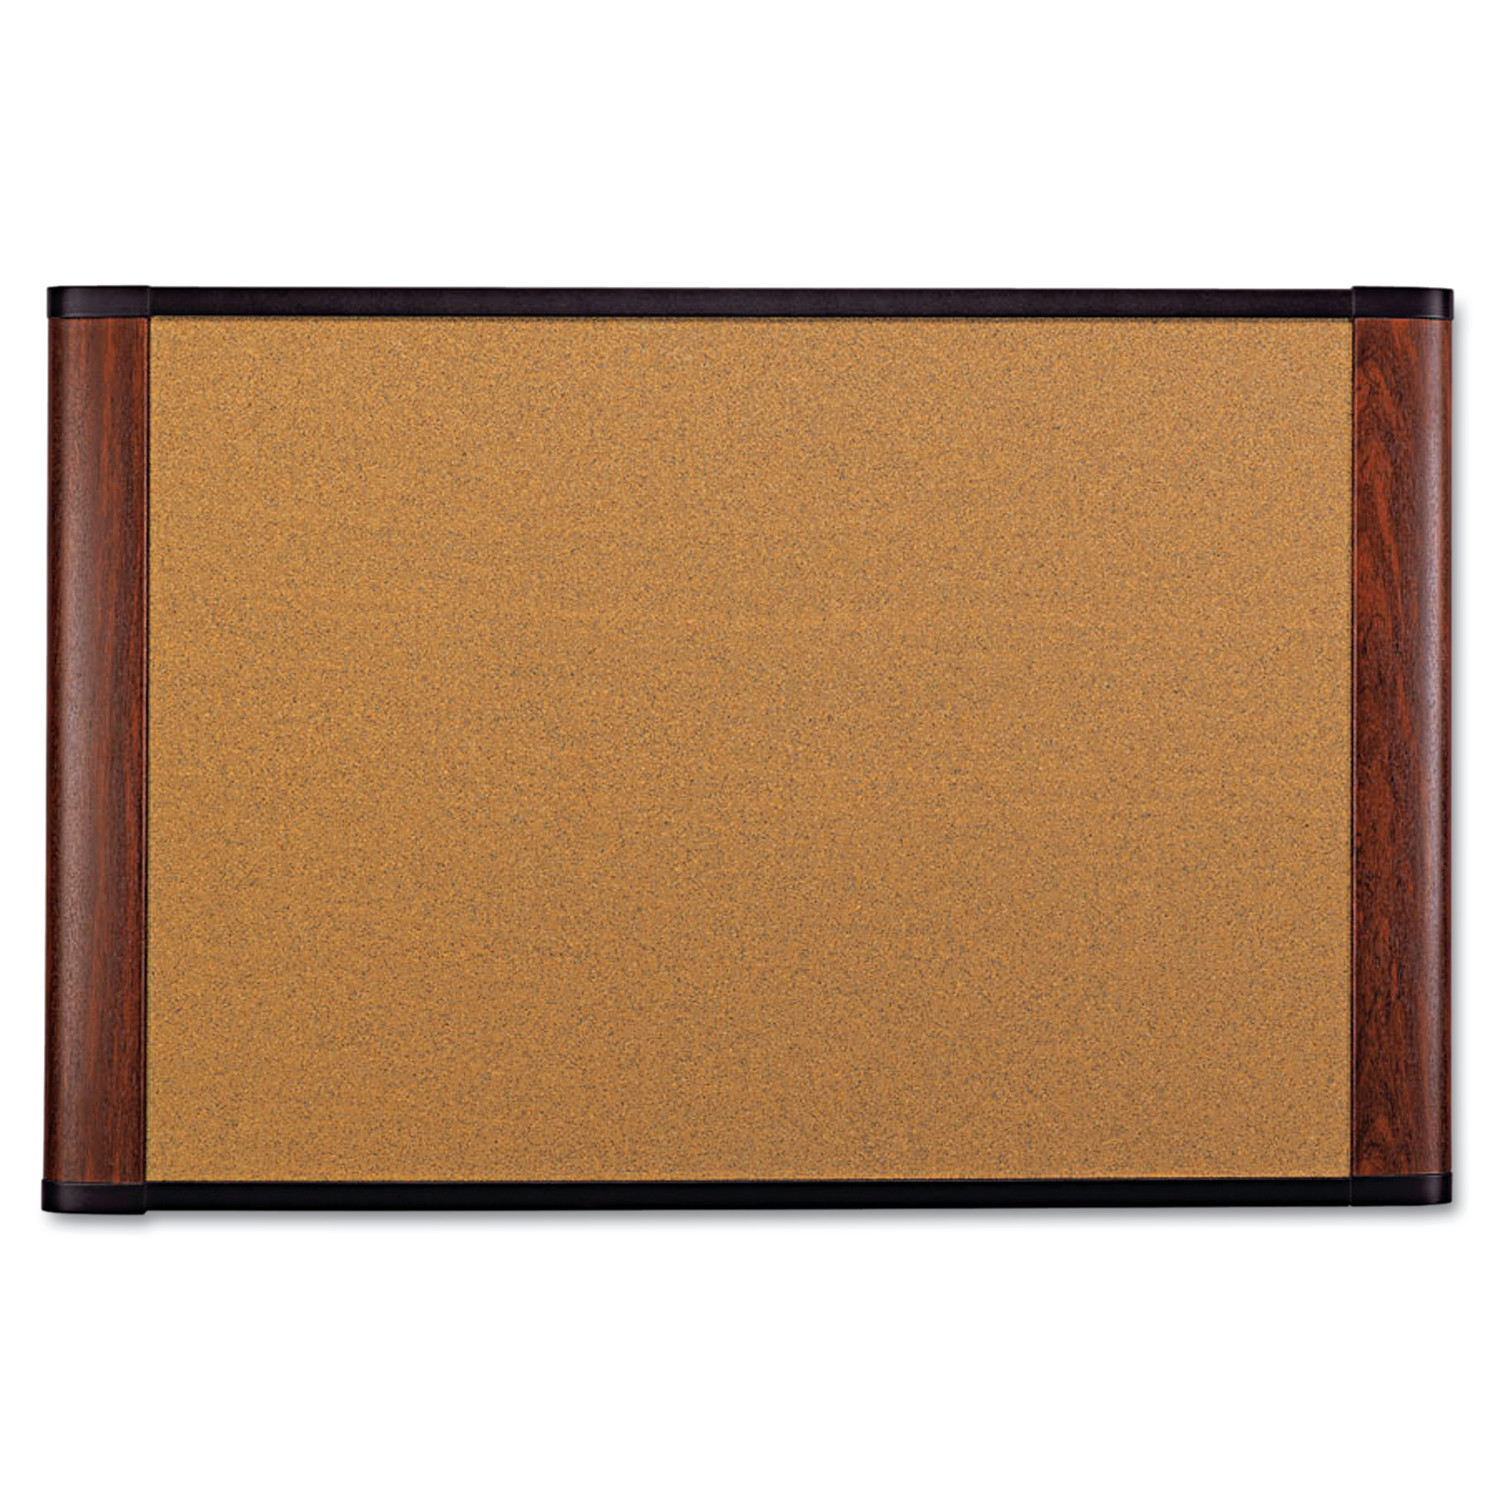 "3M Cork Bulletin Board, 72"" x 48"", Aluminum Frame w/Mahogany Wood-Grained Finish"